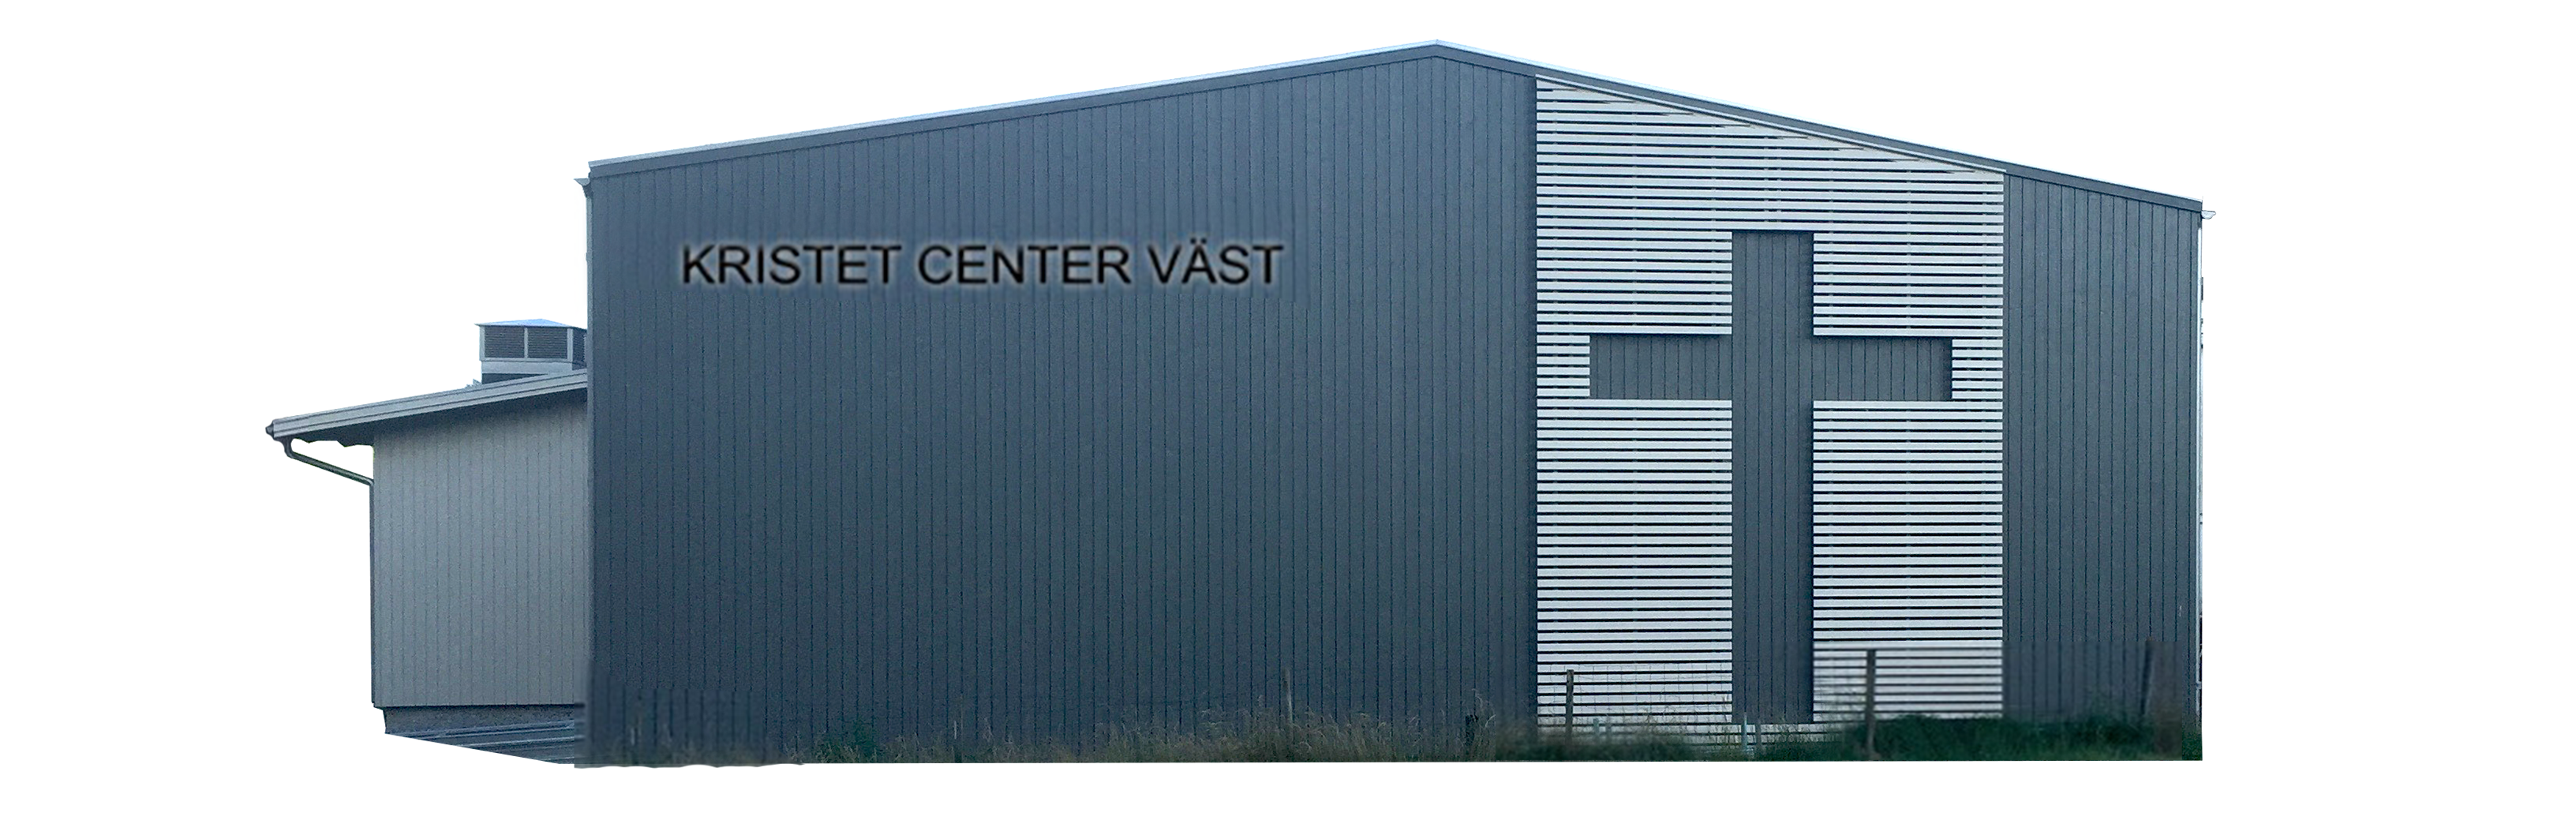 Kristet Center Väst